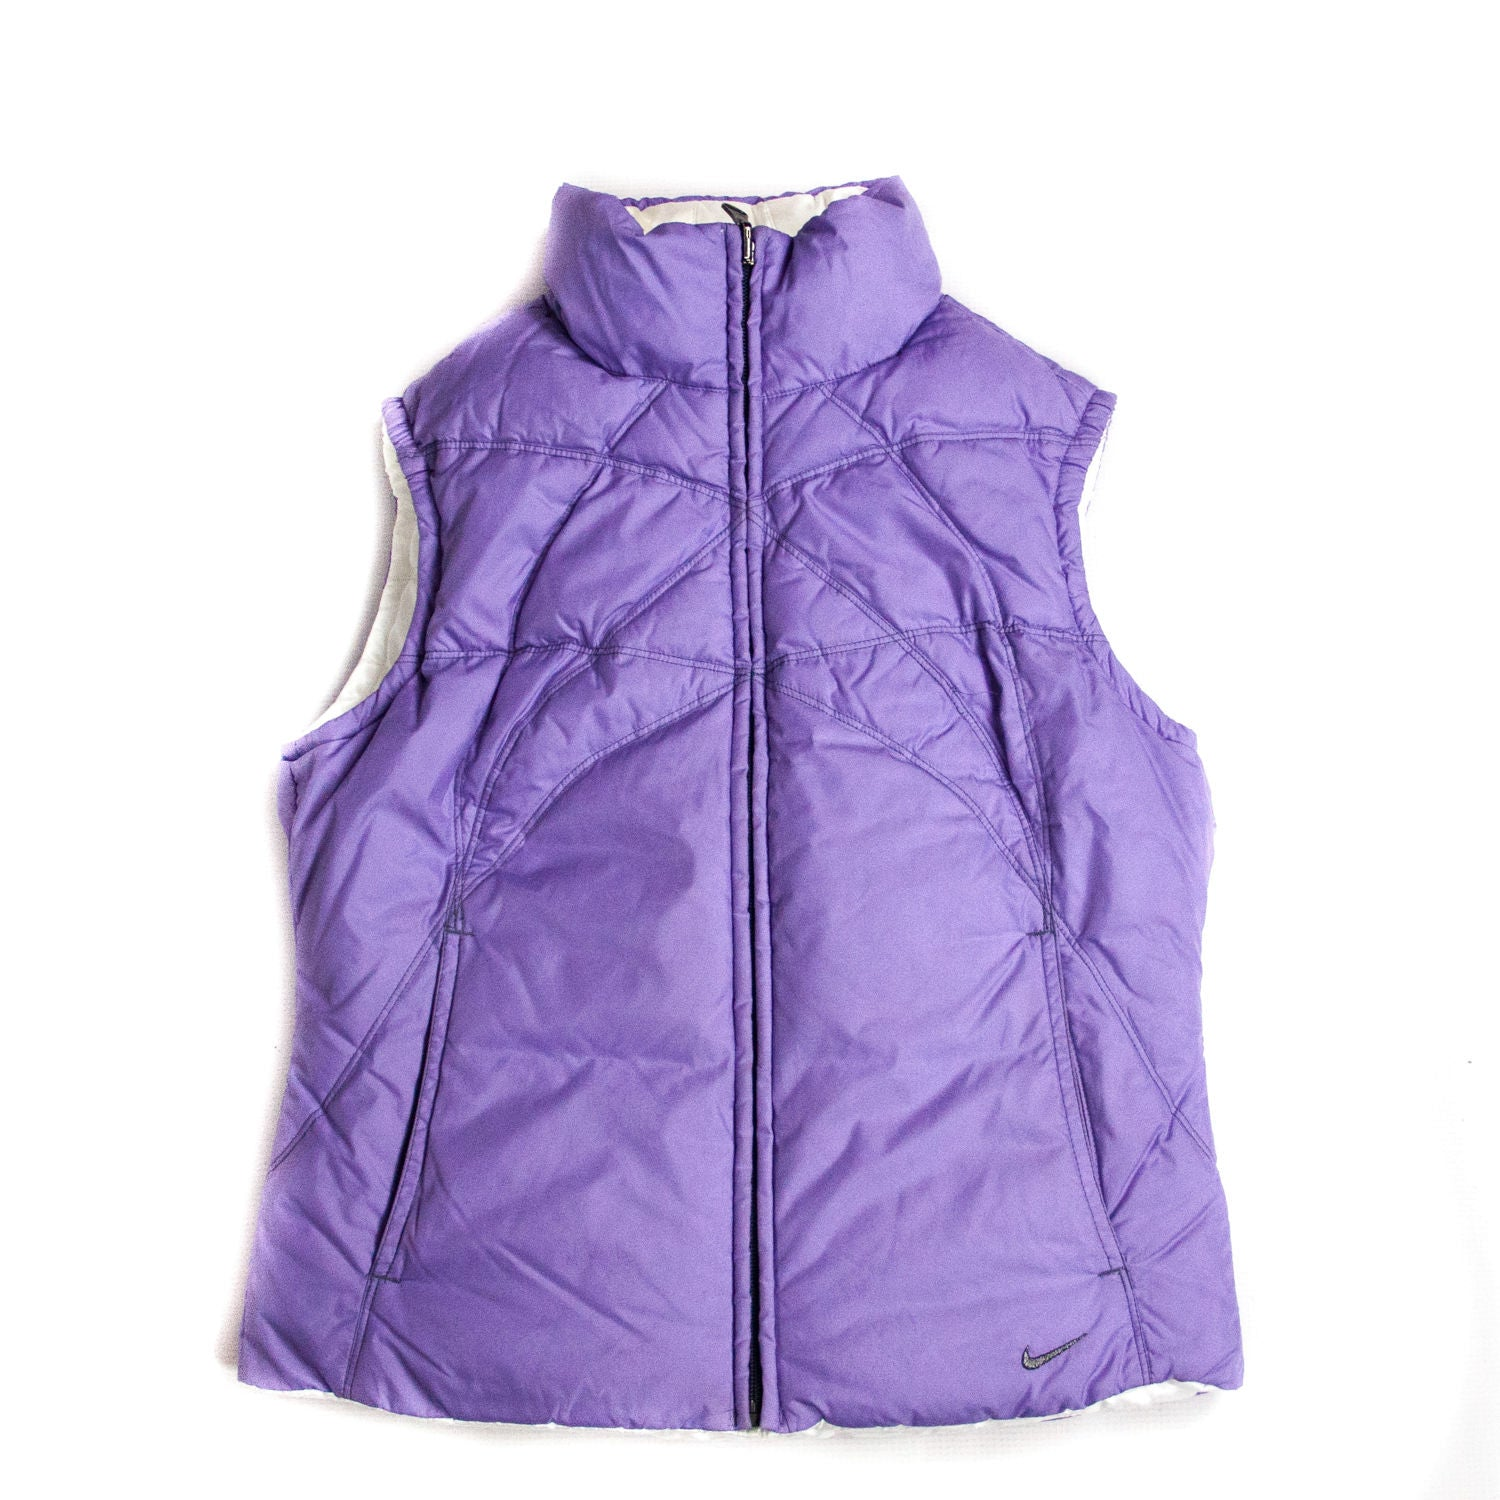 Nike Purple/White Reversible Puffer Down Vest, SIZE S - secondfirst